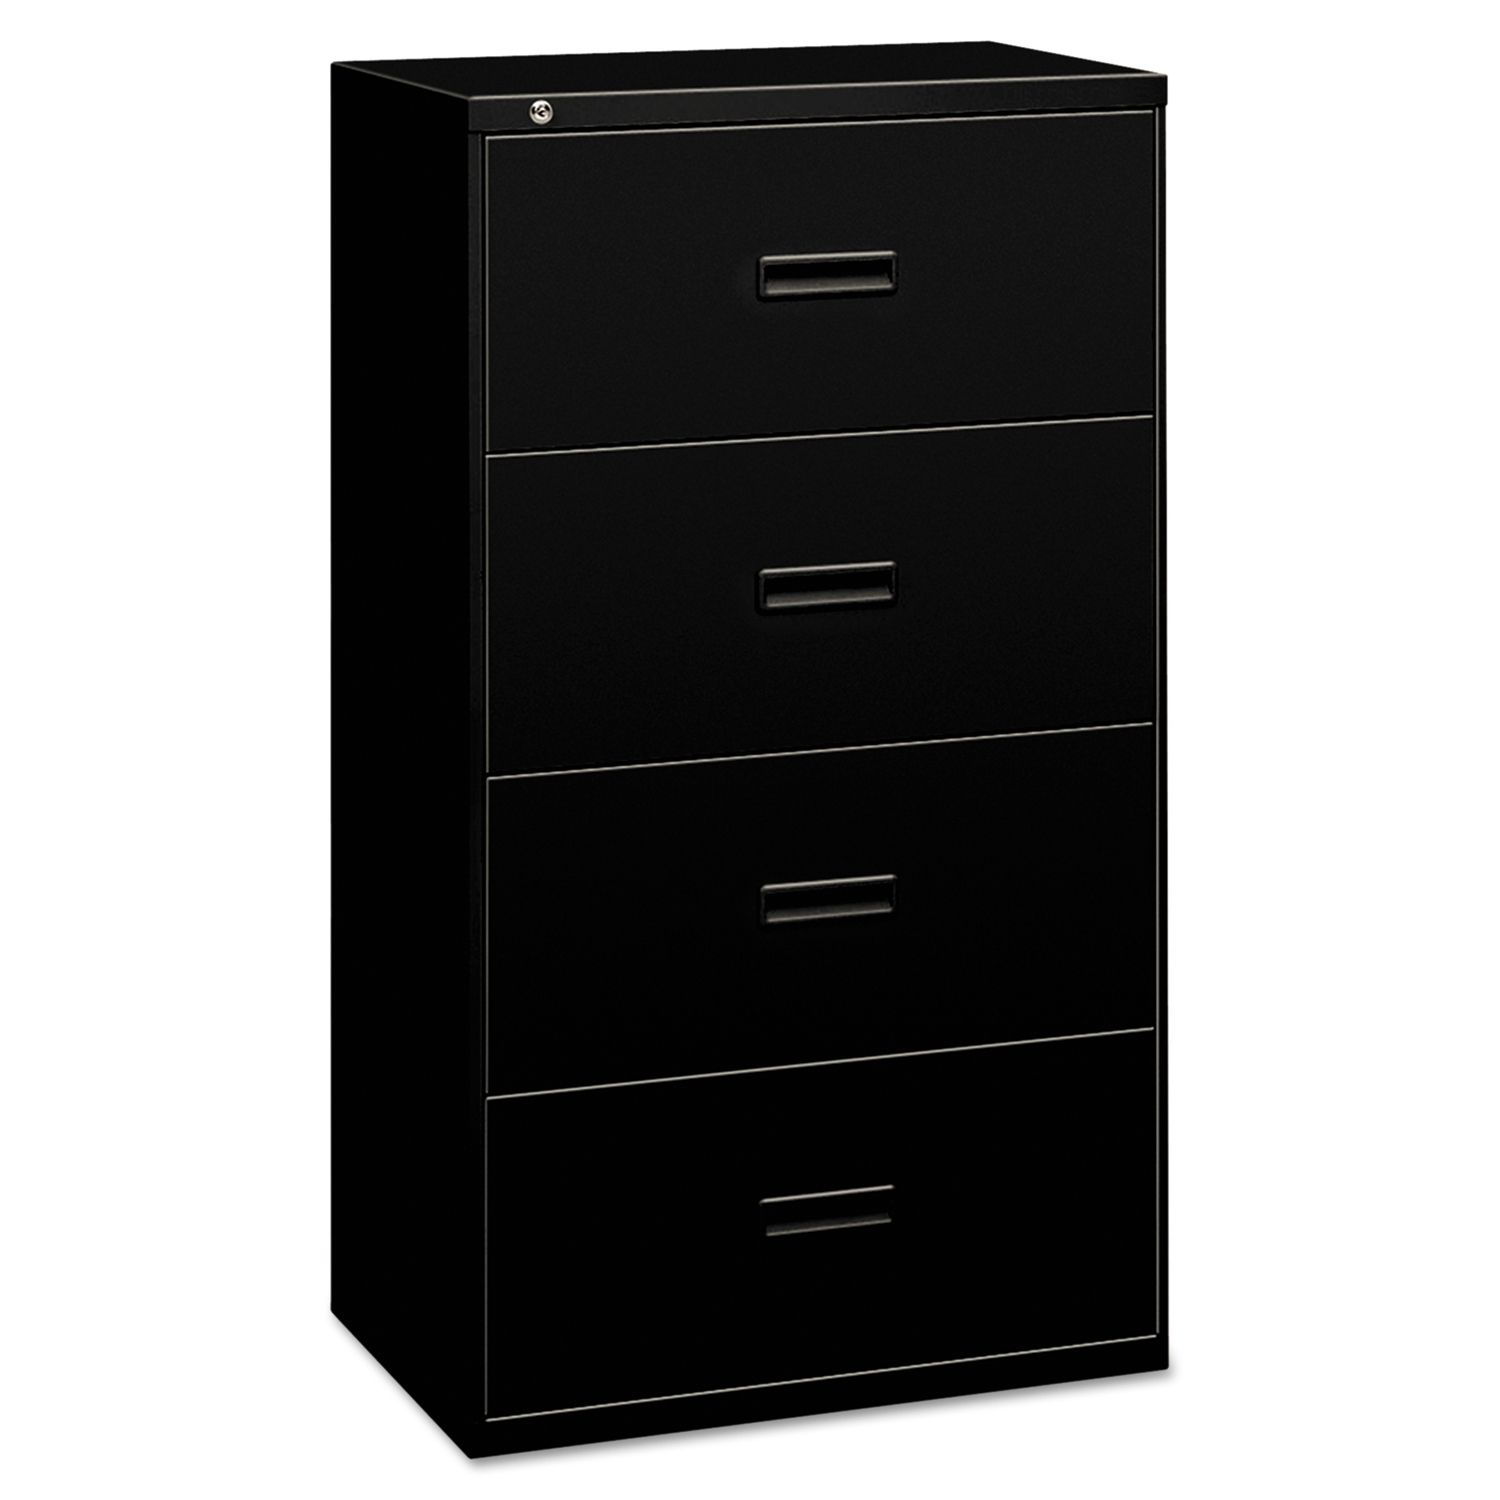 Fancy  fireproof filing cabinets for office furniture ideas with 4 drawer fireproof file cabinet